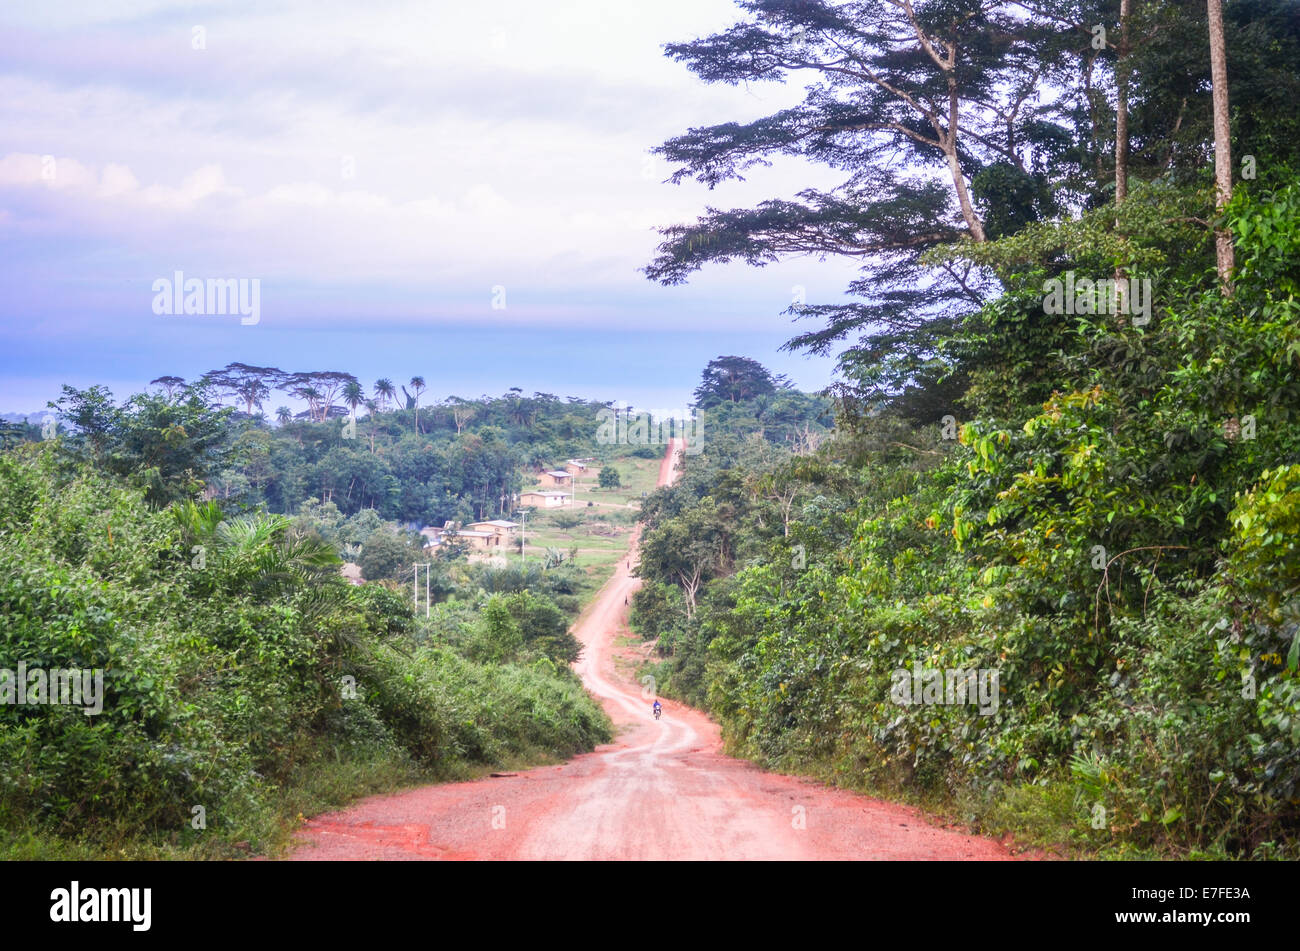 Dirt road of red earth in Nimba County, Liberia, leading to the border with Cote d'Ivoire - Stock Image